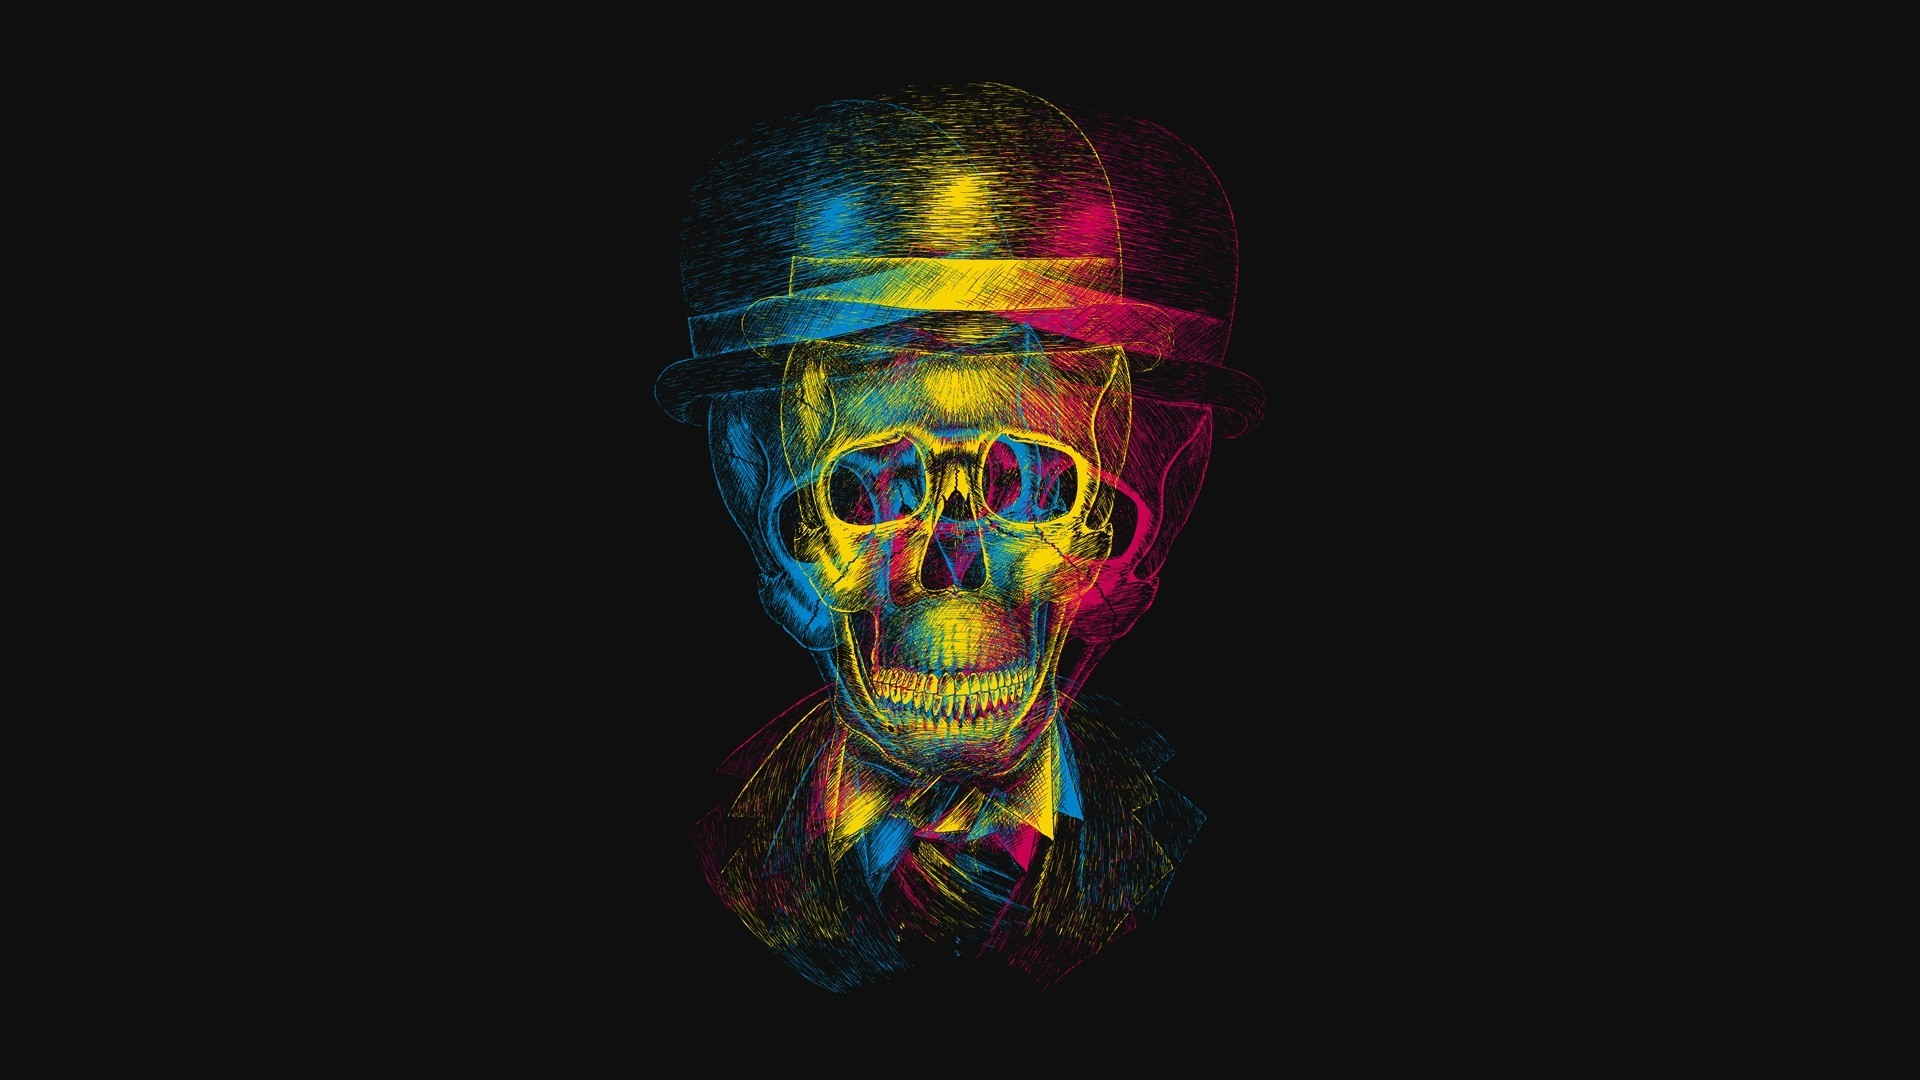 Customize your iPhone 5 with this high definition Tri Color Skull wallpaper  from HD Phone Wallpapers!